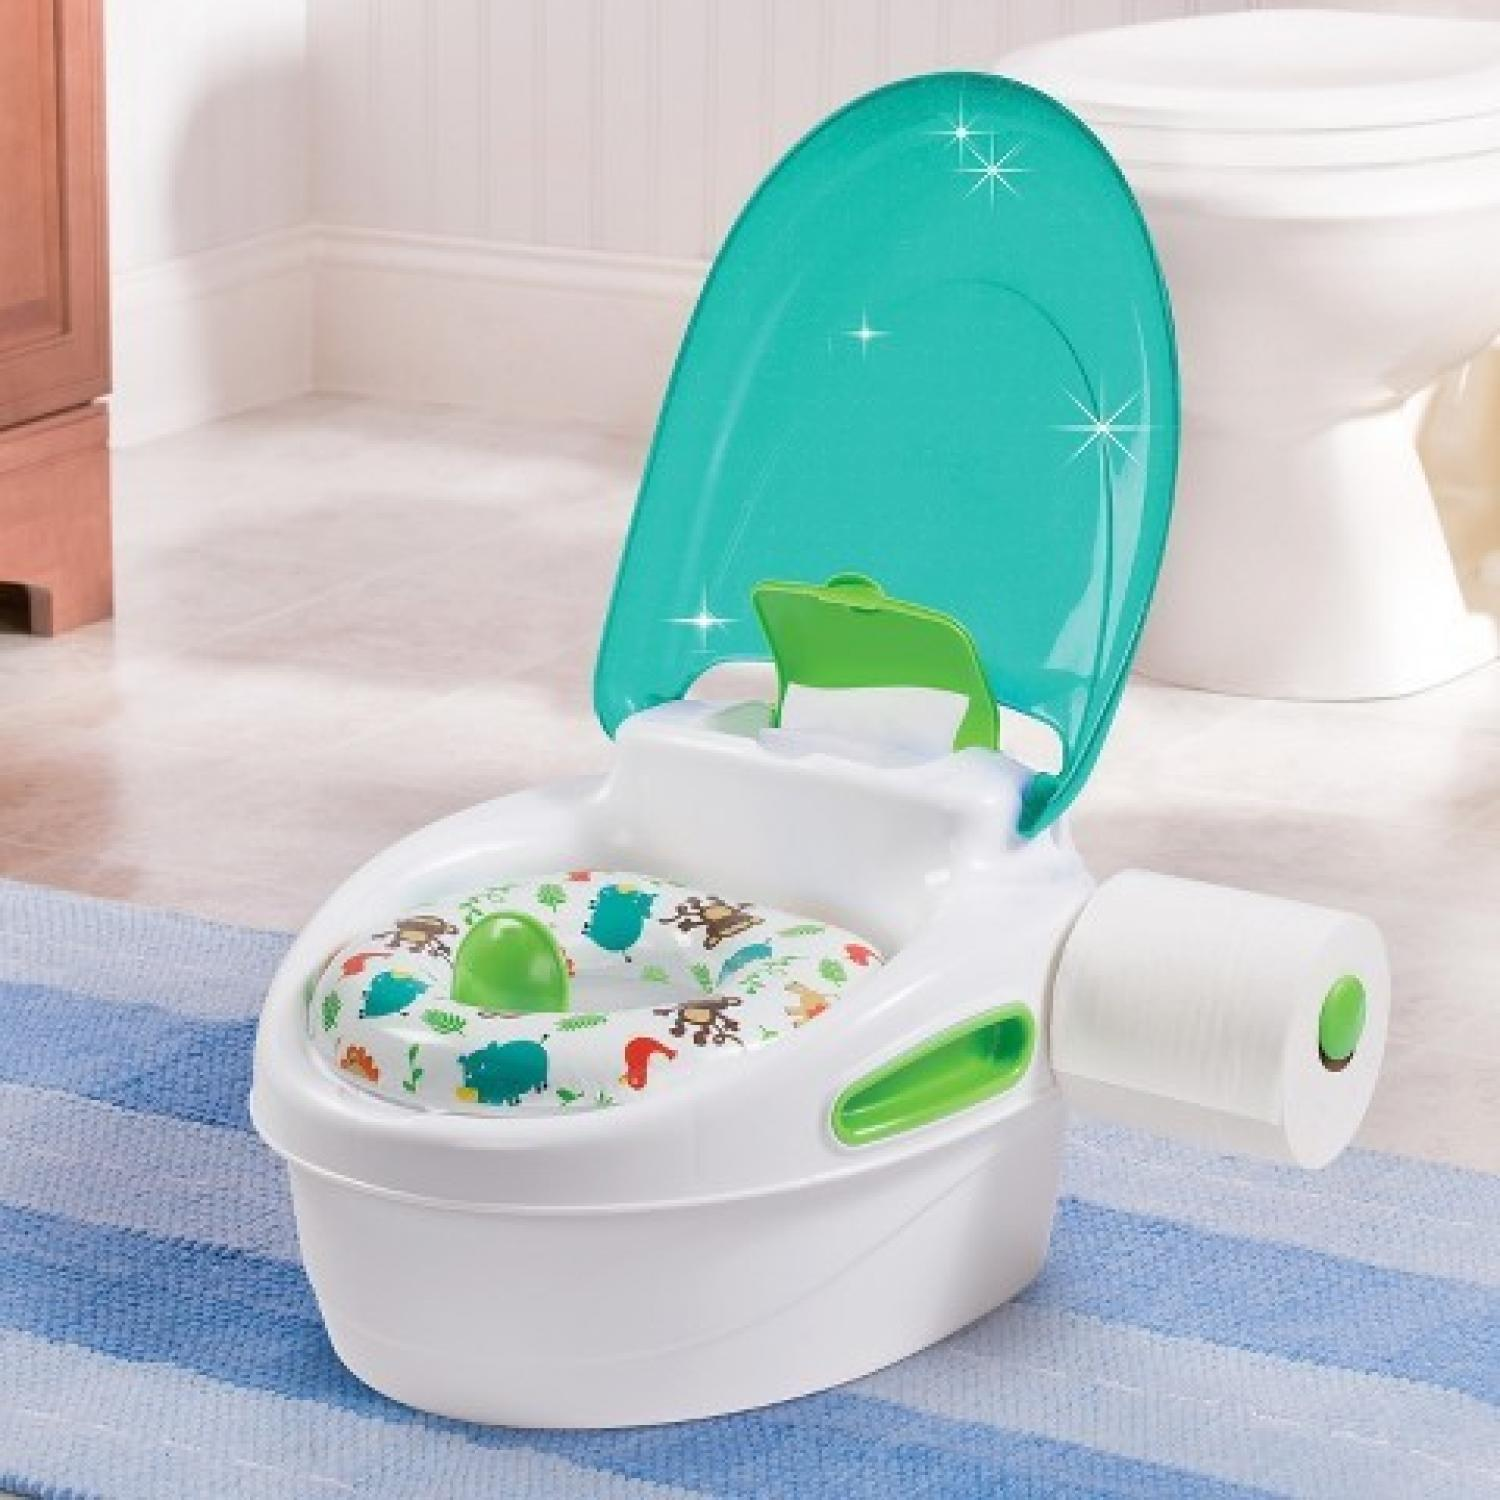 singing potty chair spandex banquet covers wholesale best training products parenting